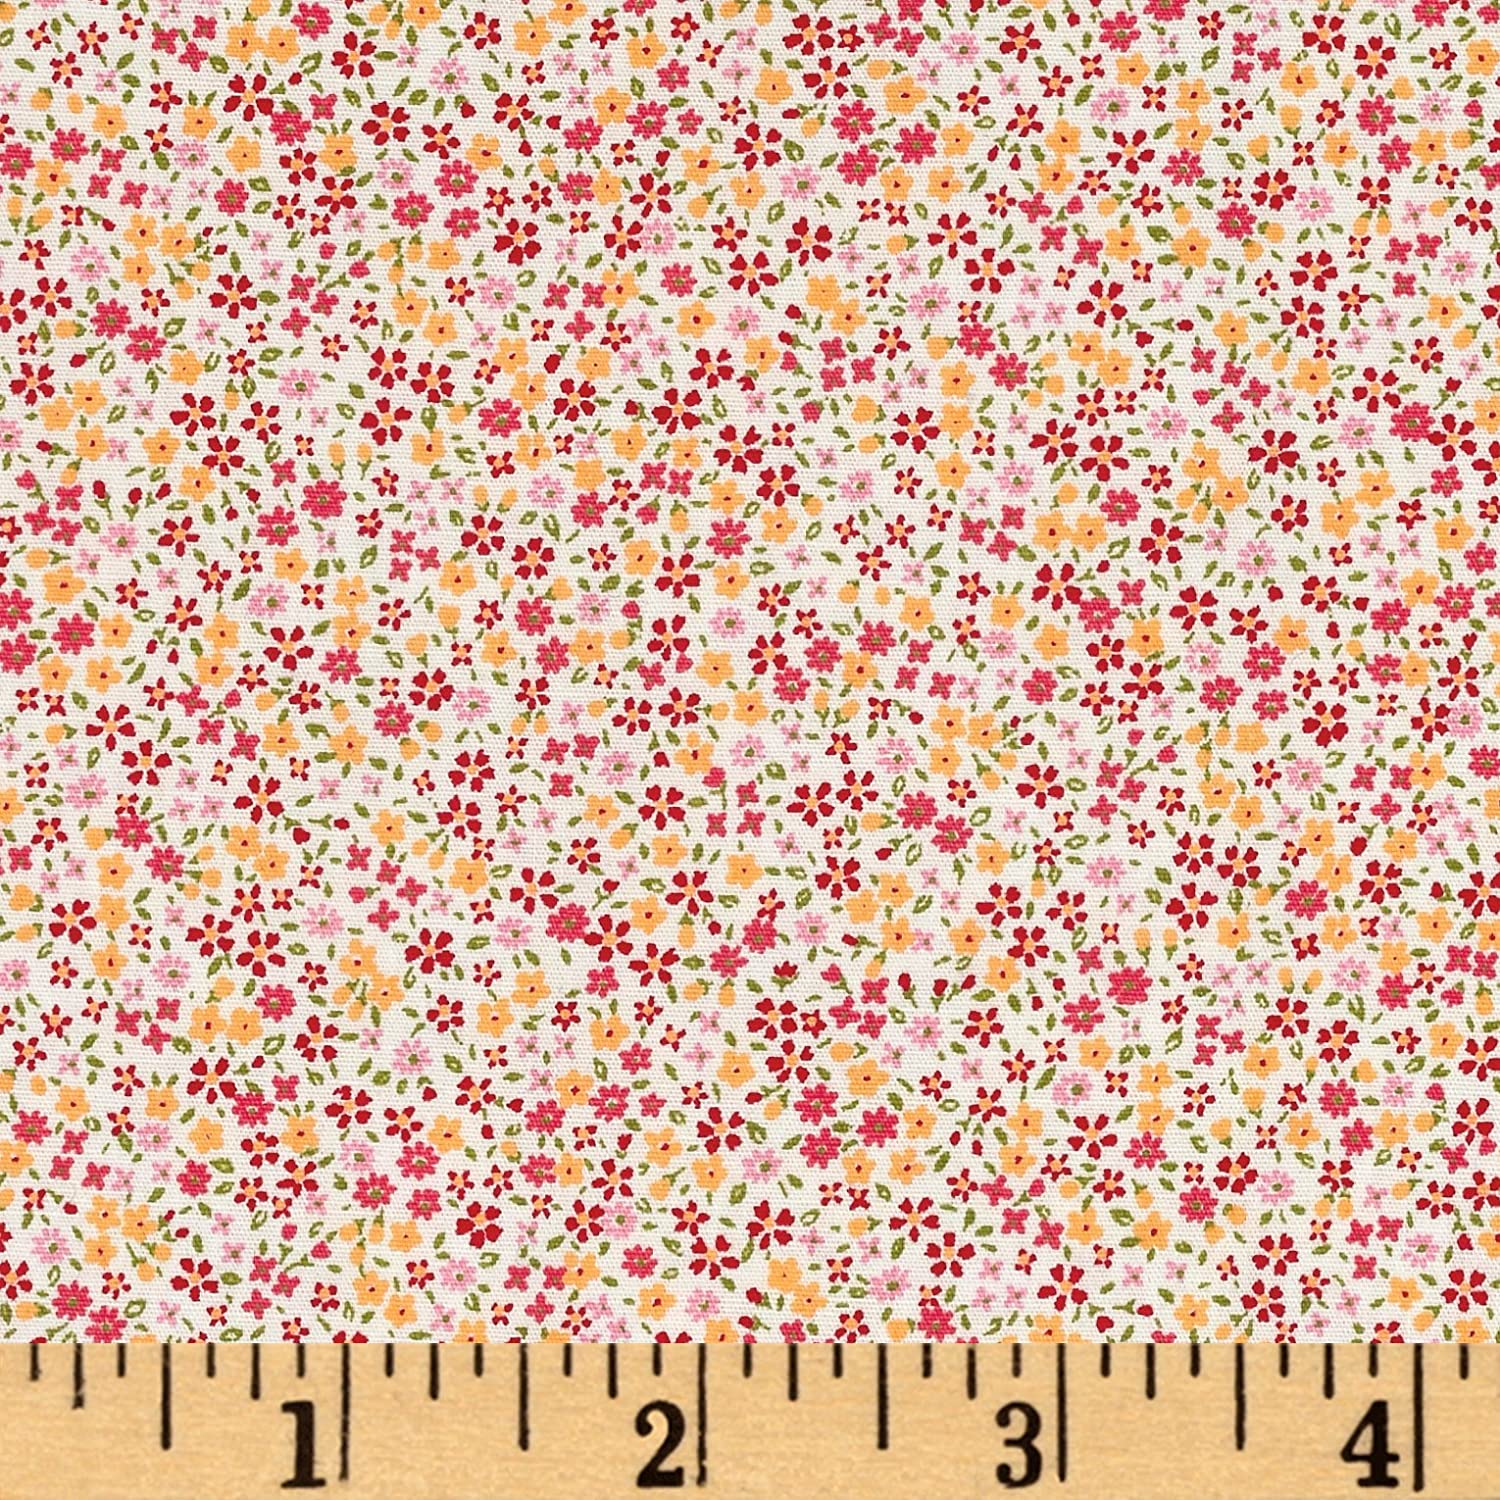 Kaufman bouffants amp broken hearts girls red fabric by the yard - Amazon Com Kaufman Sevenberry Petite Garden Tiny Flower Fuchsia Fabric By The Yard